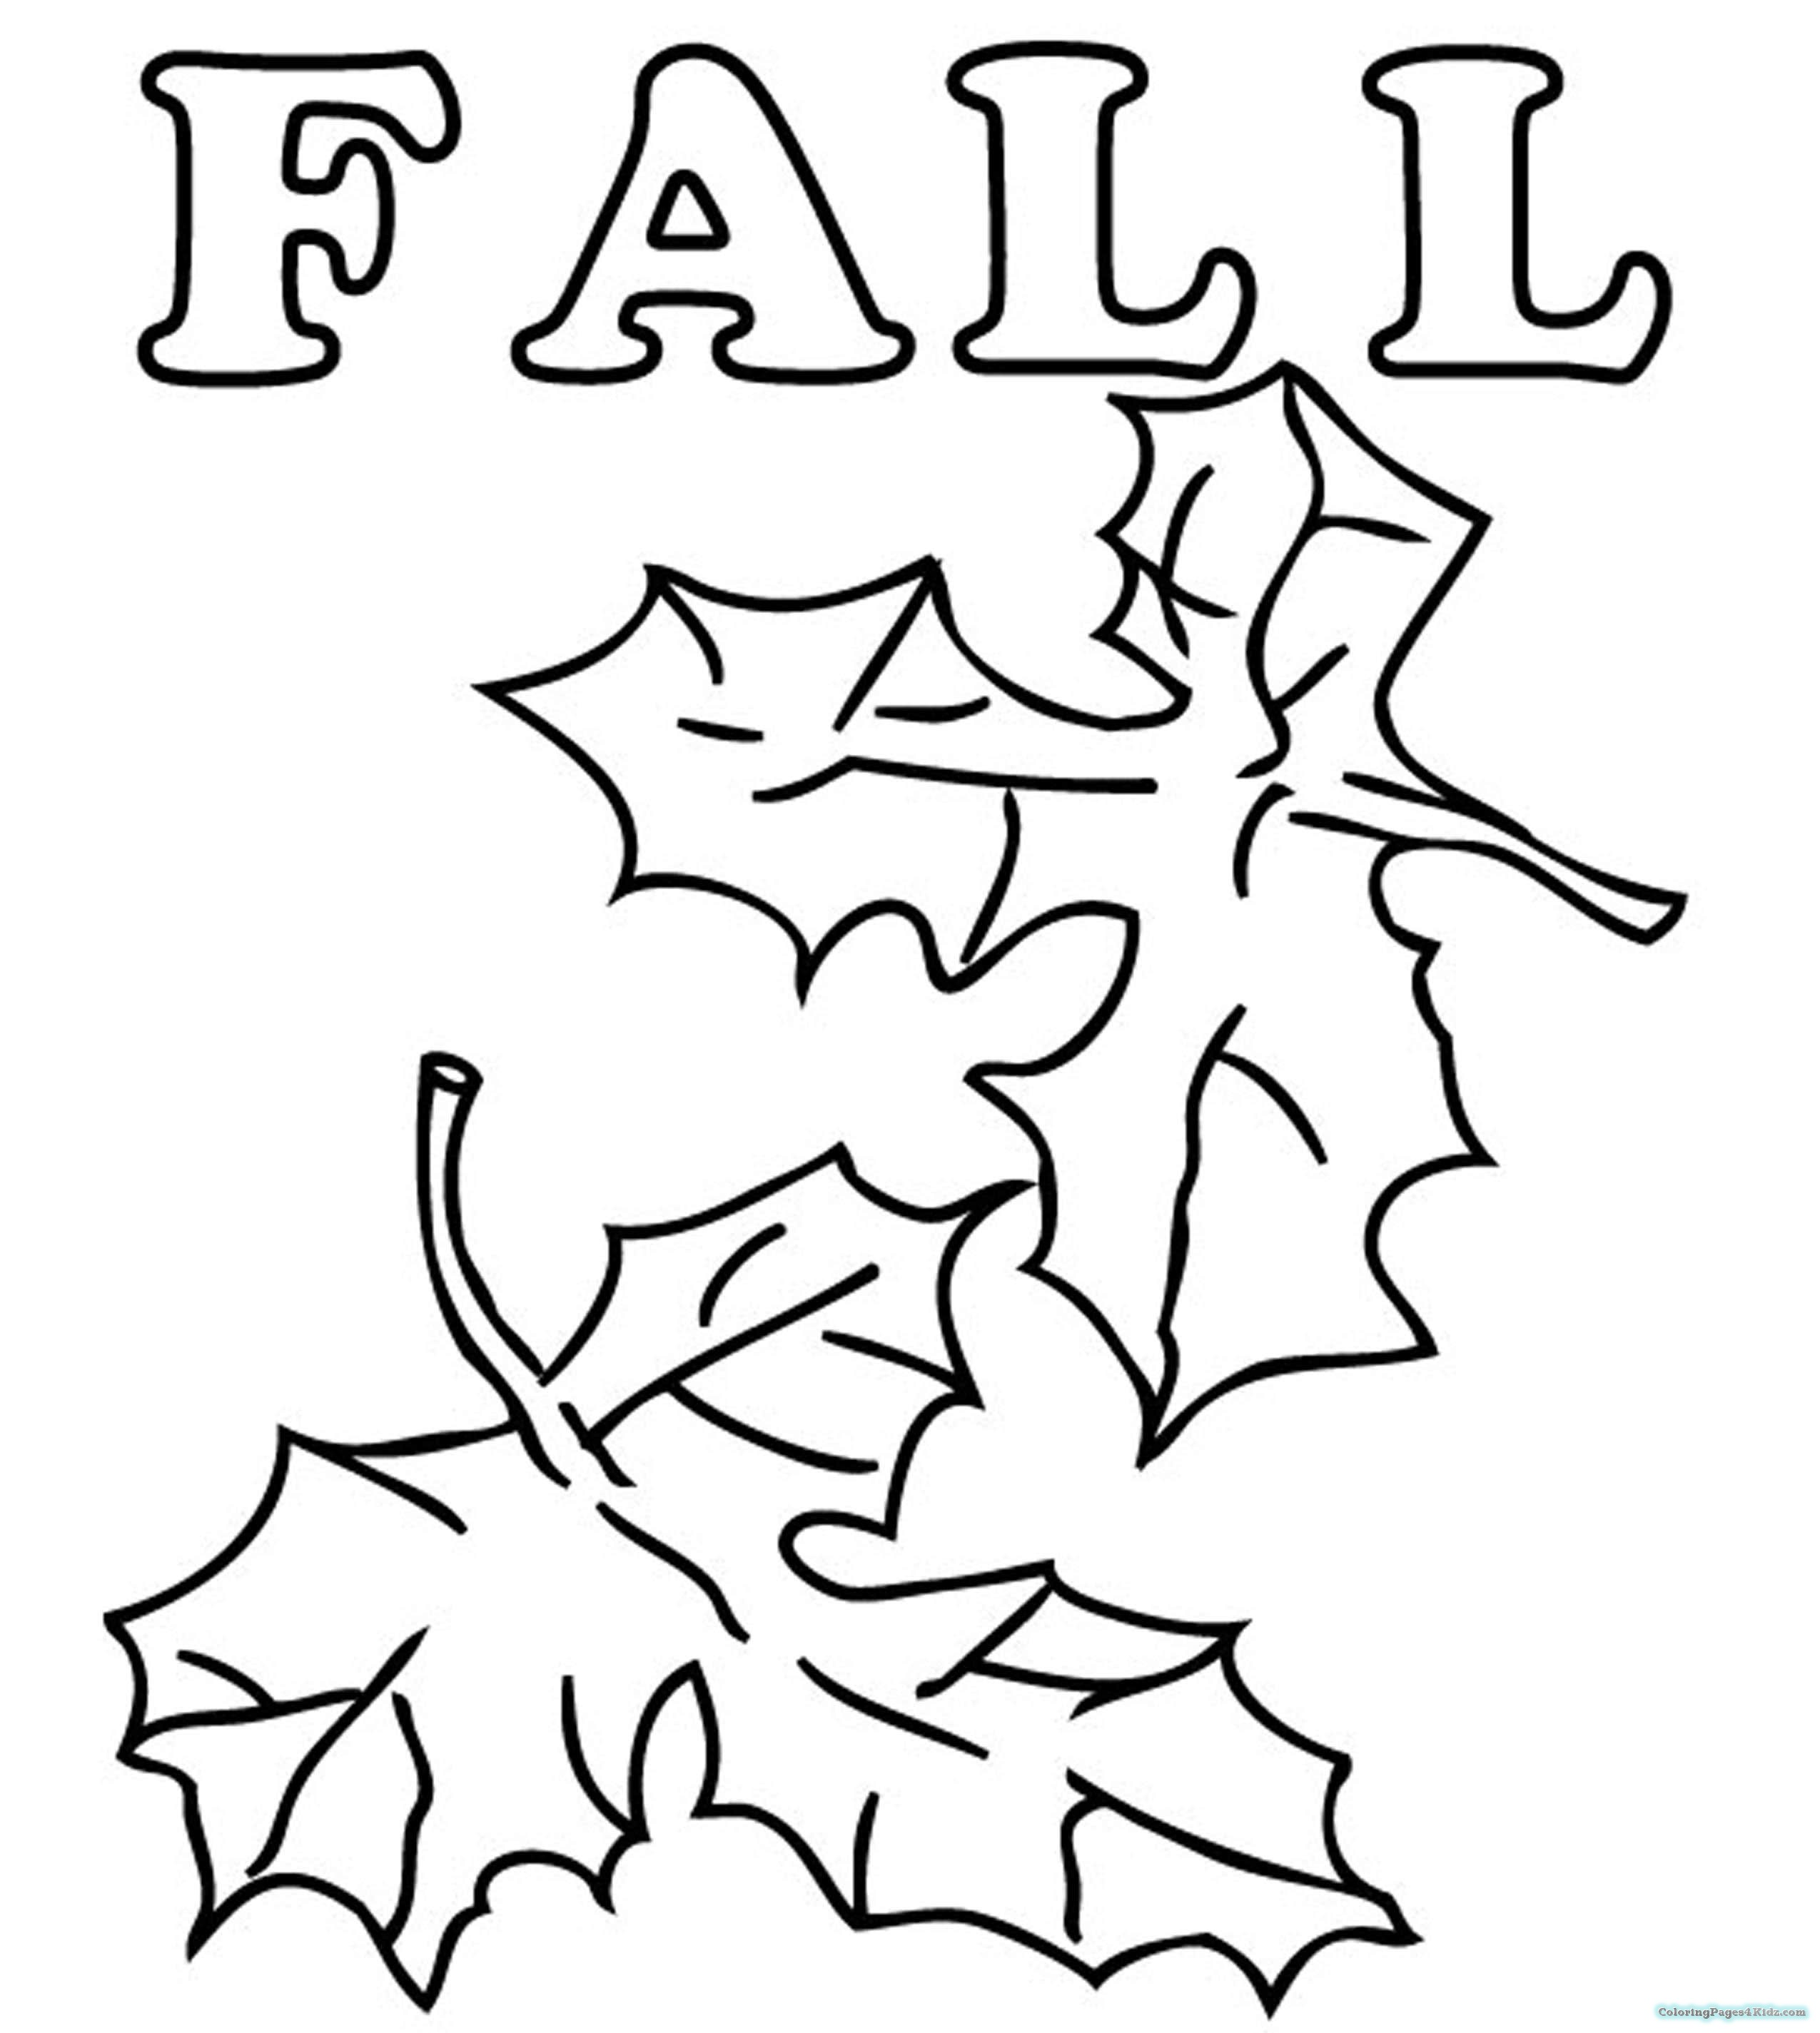 free fall printable coloring pages free printable fall coloring pages for kids best printable pages free coloring fall